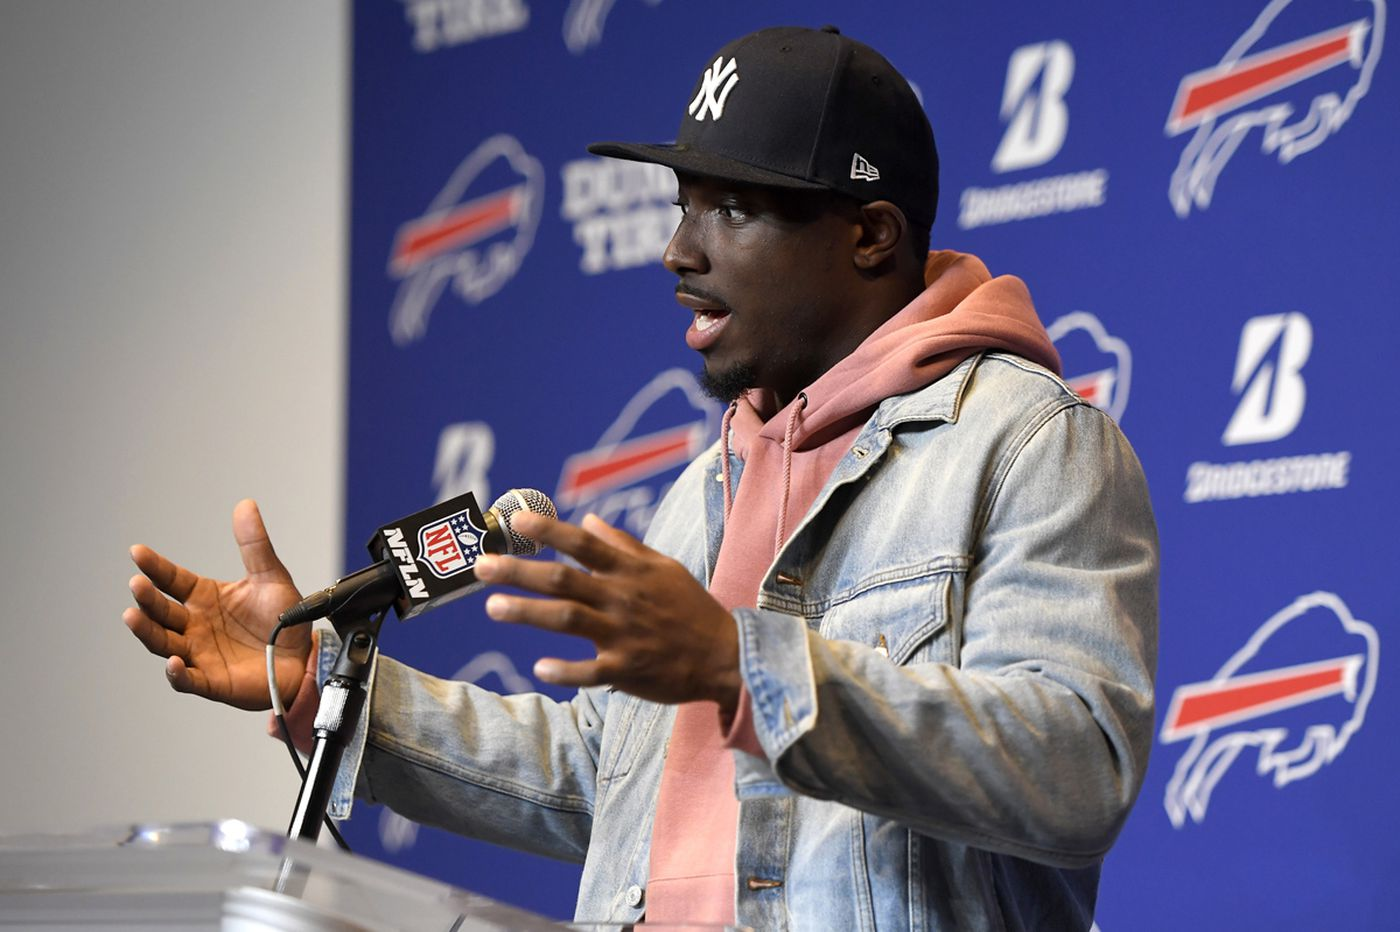 LeSean McCoy, Bills coach Sean McDermott discuss Eagles trade rumor